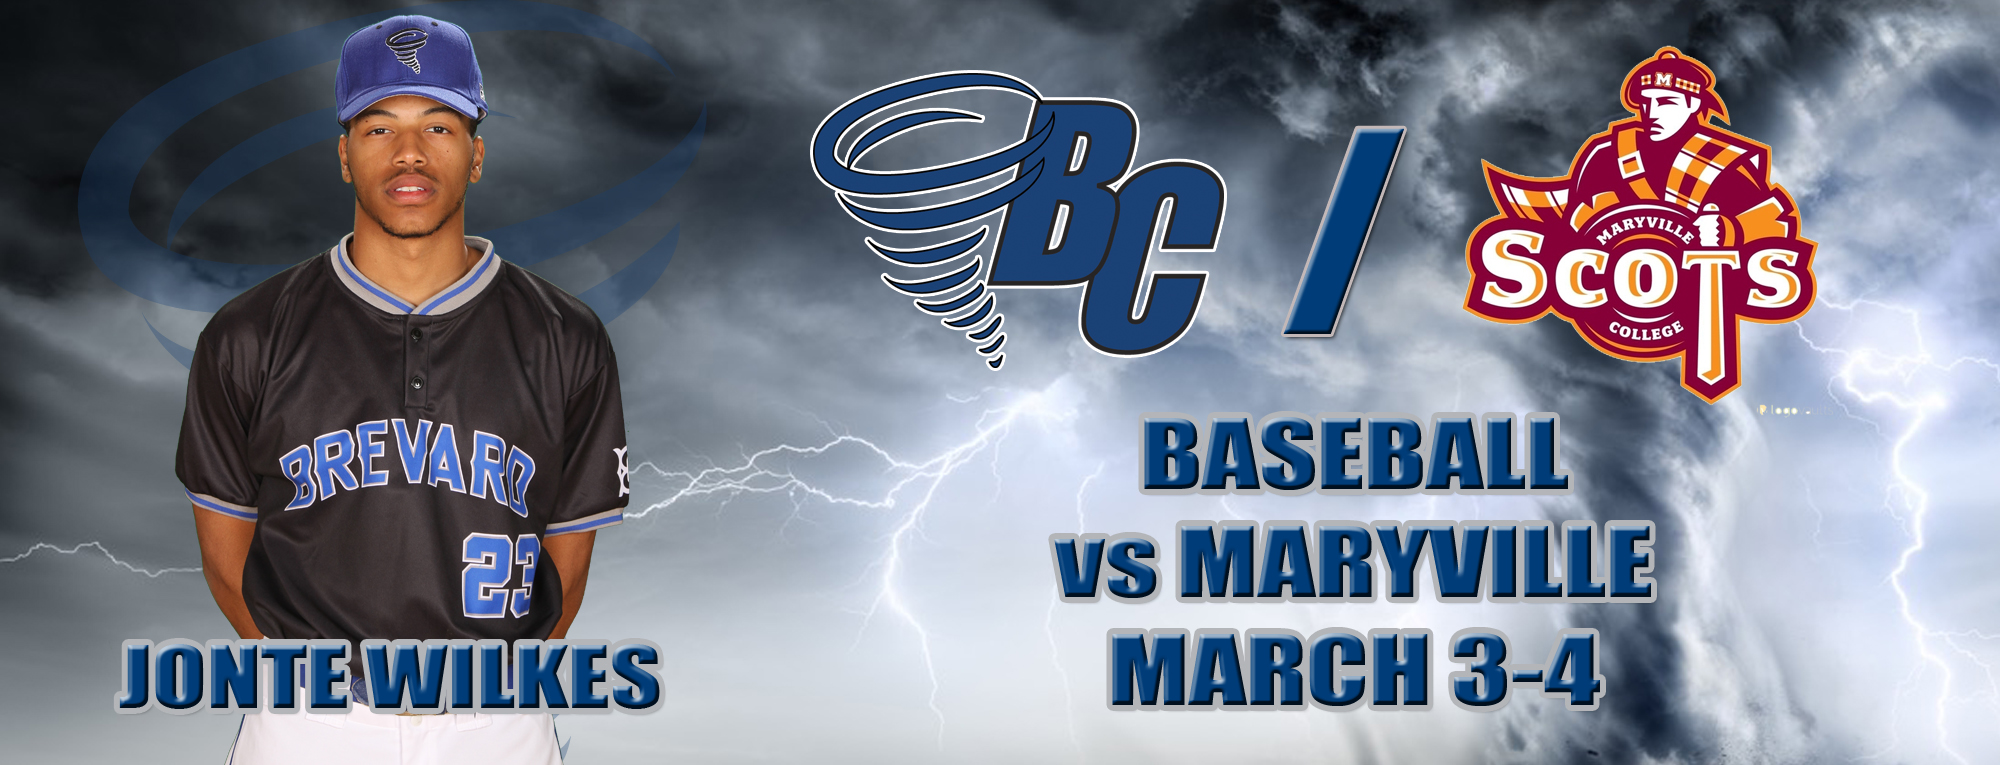 Brevard Hosts Maryville in Weekend Series